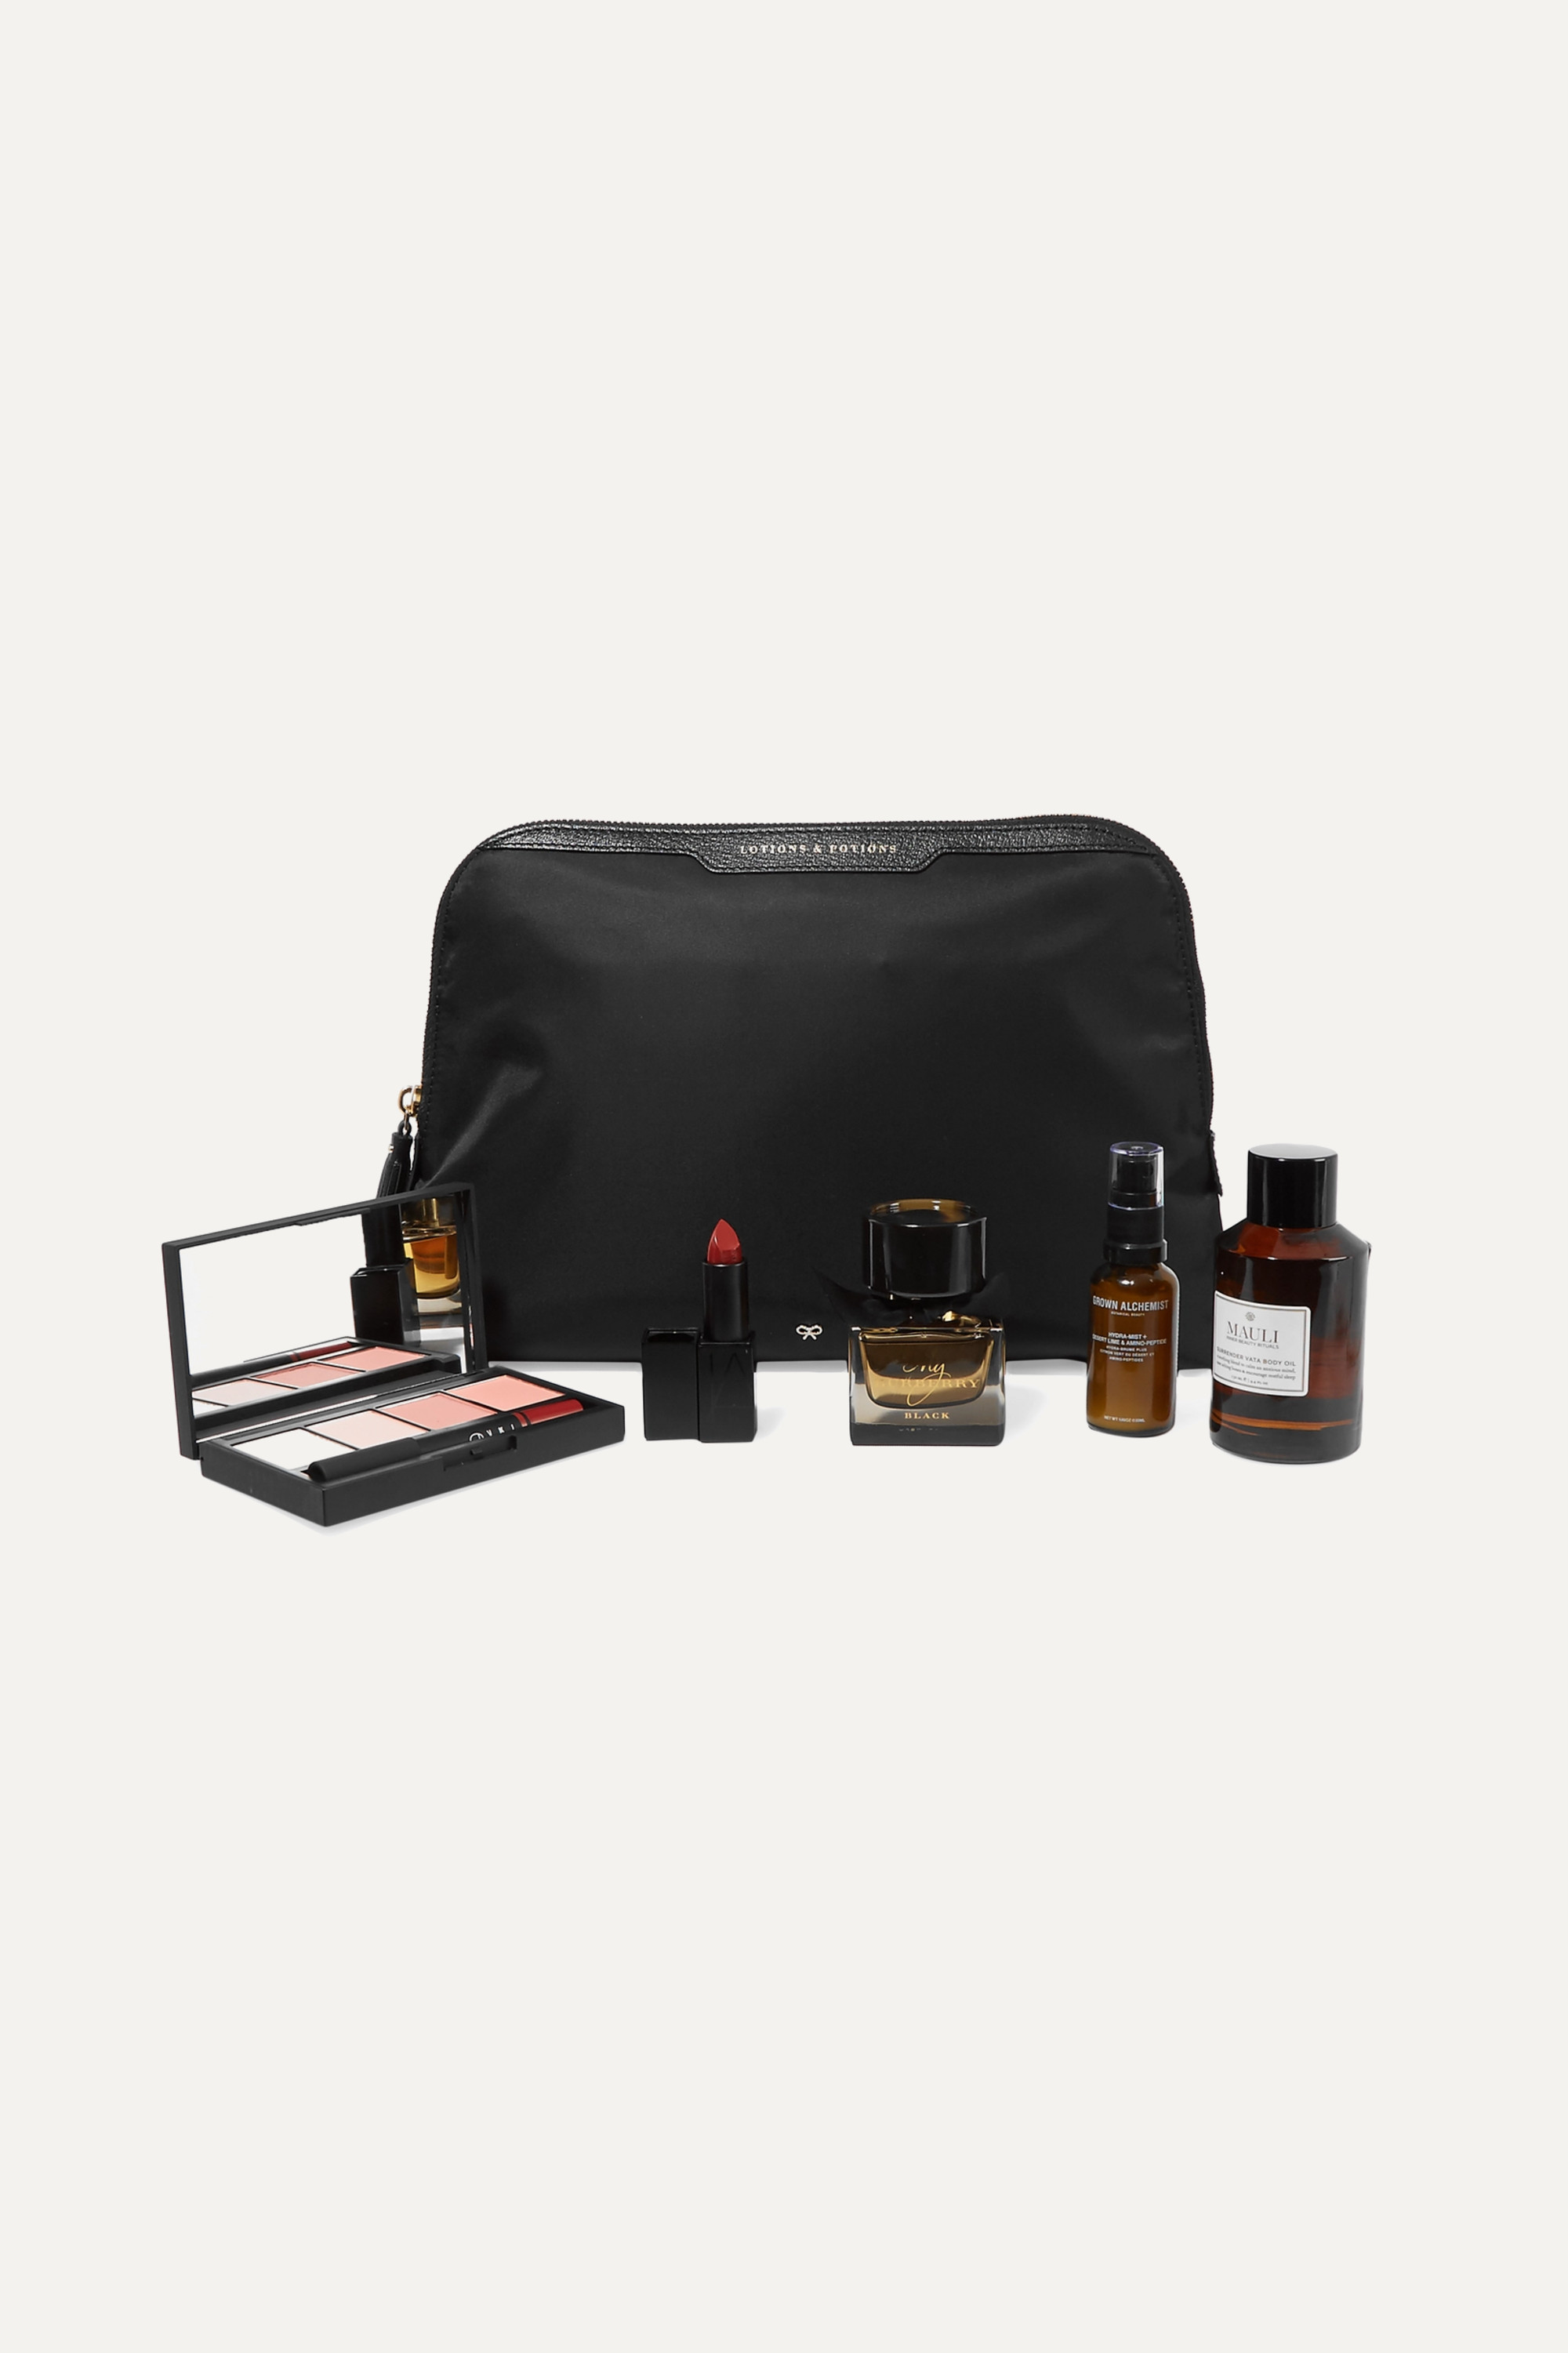 Anya Hindmarch Lotions and Potions leather-trimmed shell cosmetics case